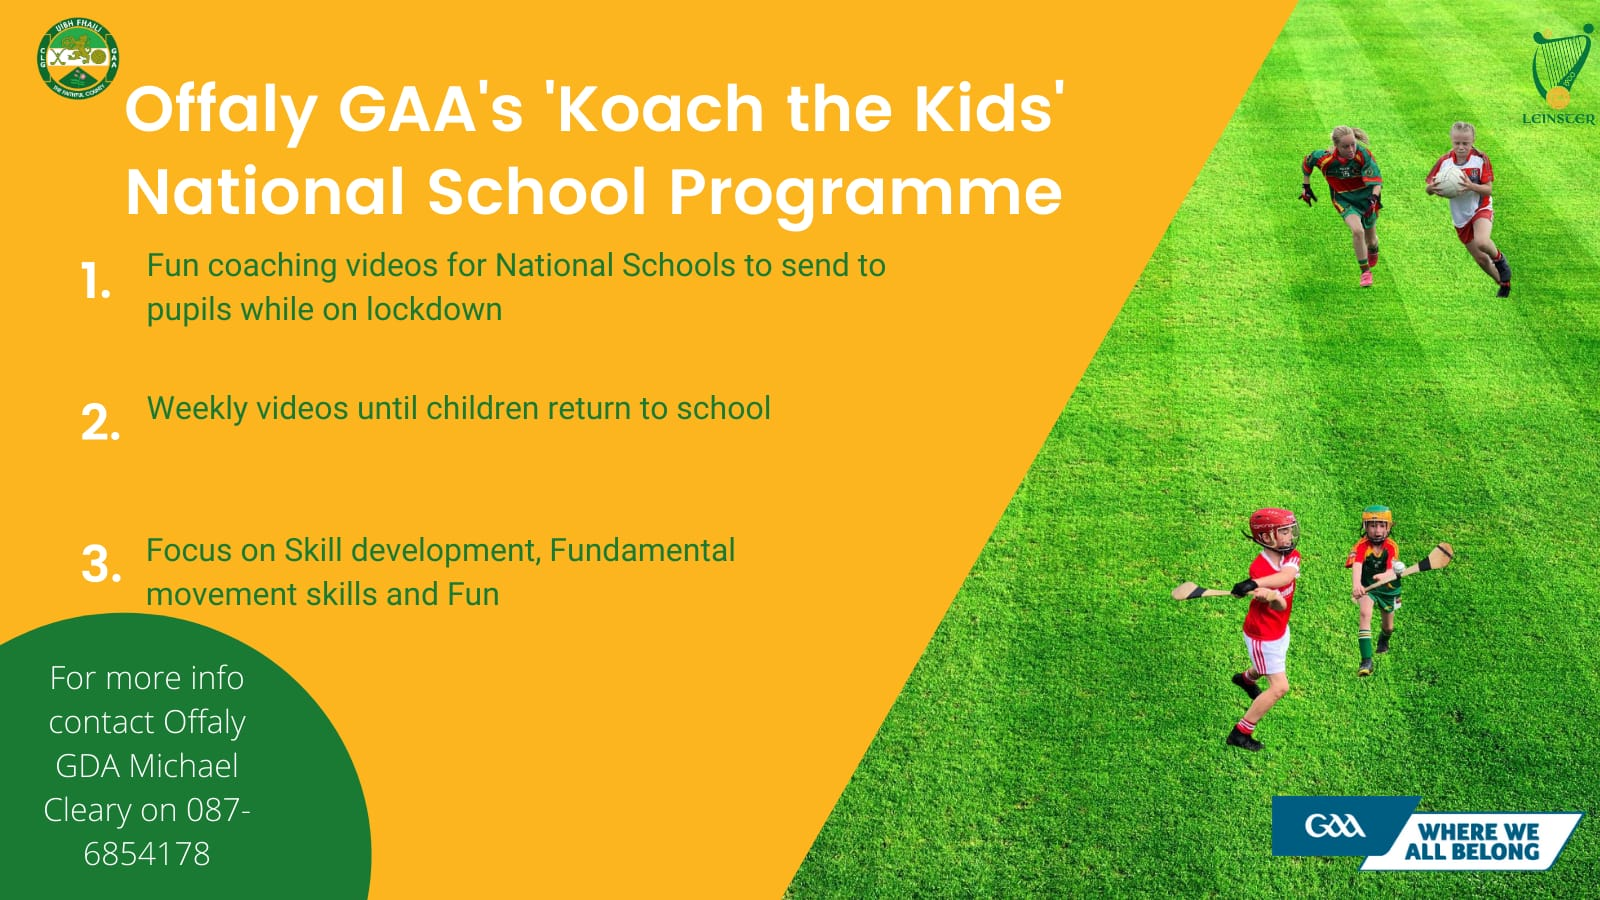 'Koach The Kids' Videos For National Schools